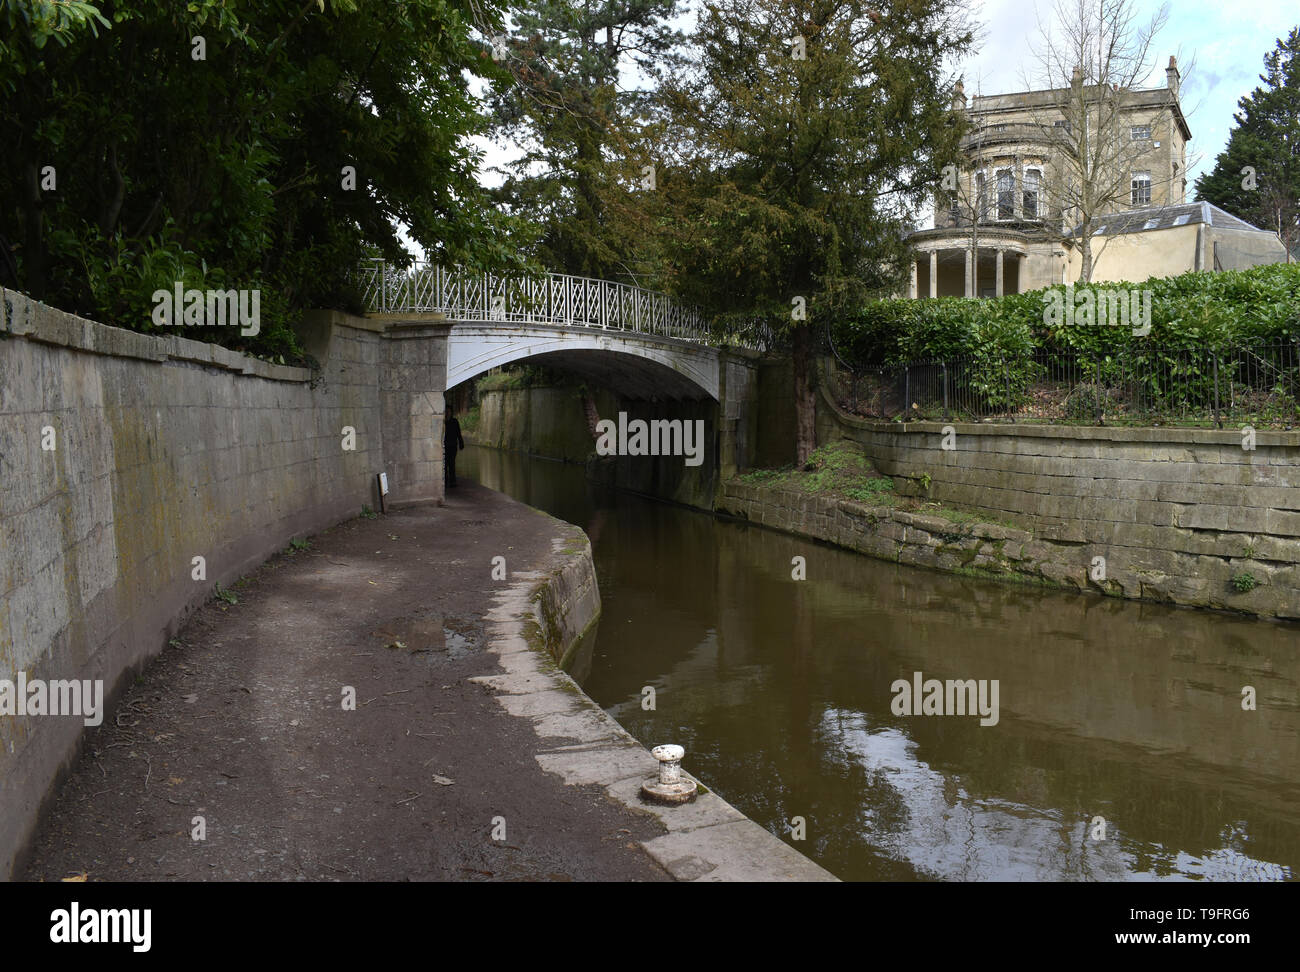 The Kennet of Avon canal in Sydney Gardens, Bath. - Stock Image